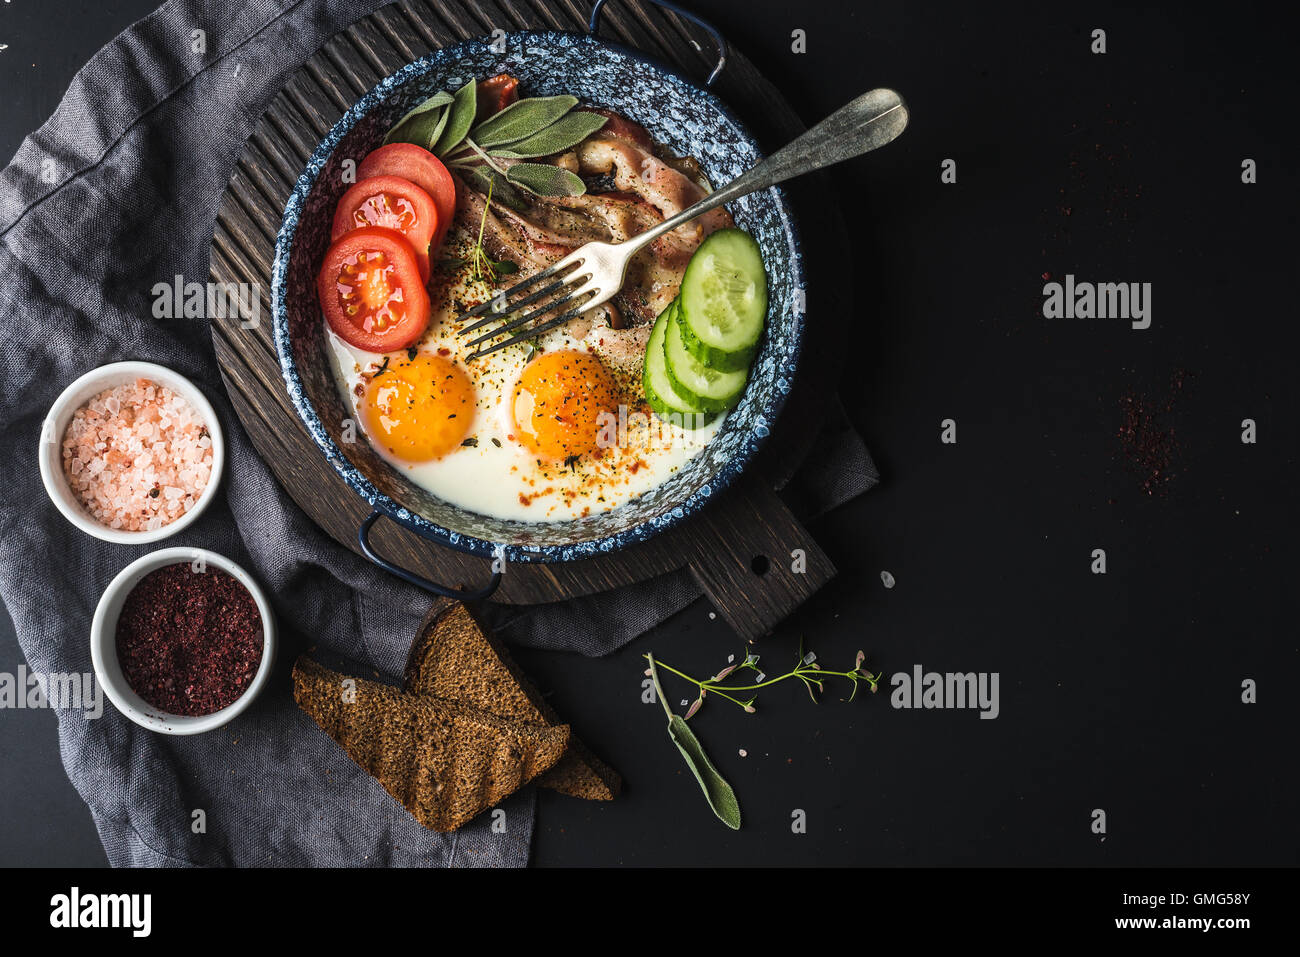 Breakfast set. Pan of fried eggs with bacon, fresh tomato, cucumber, sage and bread on dark serving board over black - Stock Image